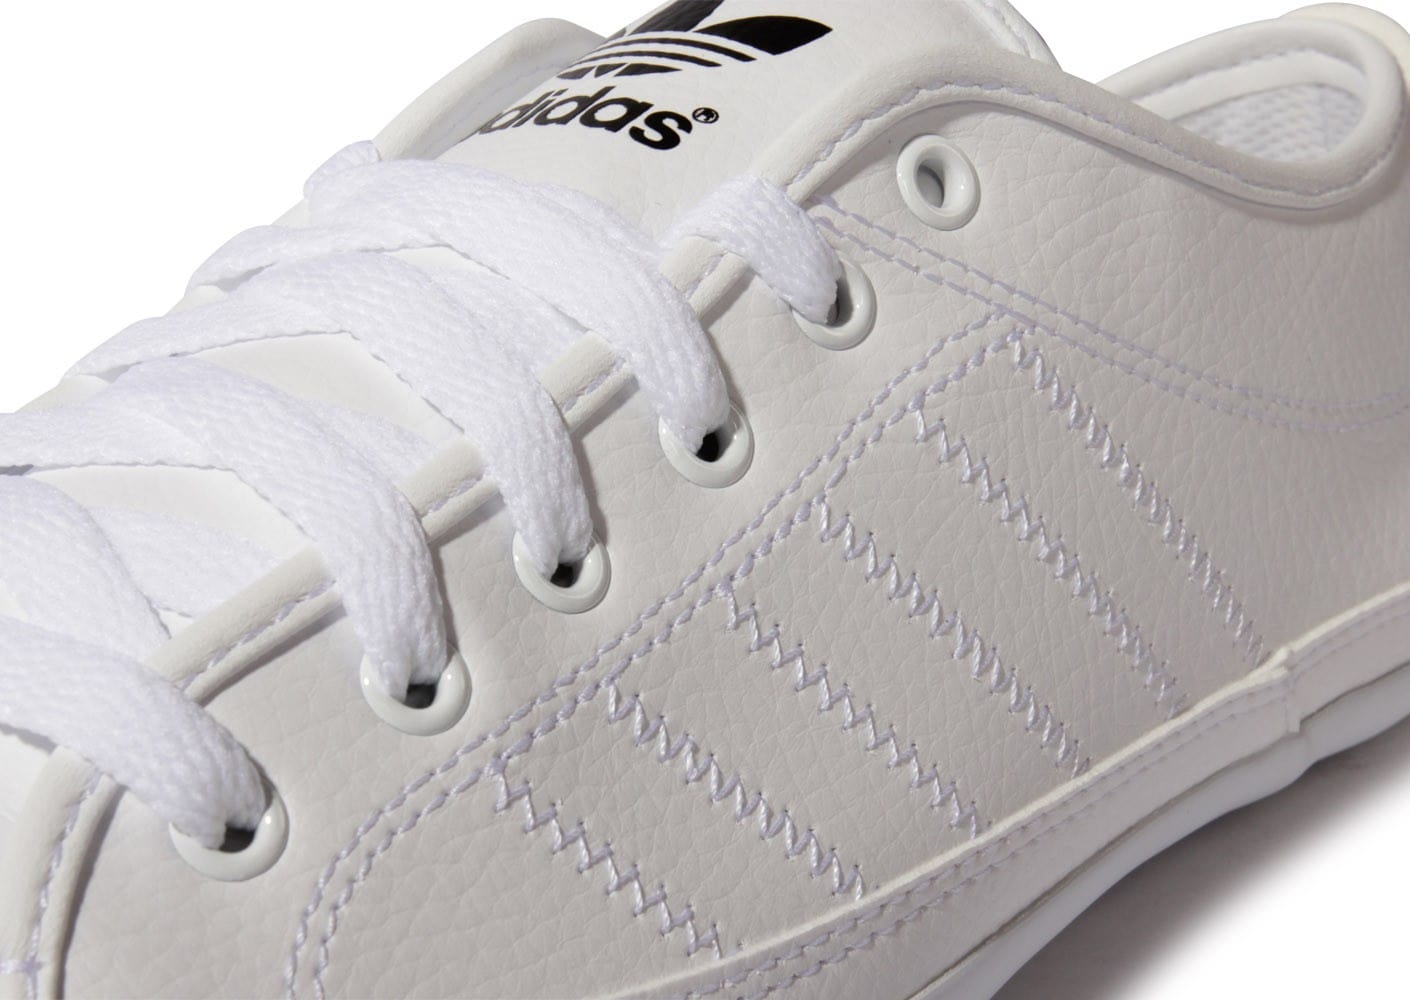 adidas Nizza Remodel Blanche Chaussures Baskets homme